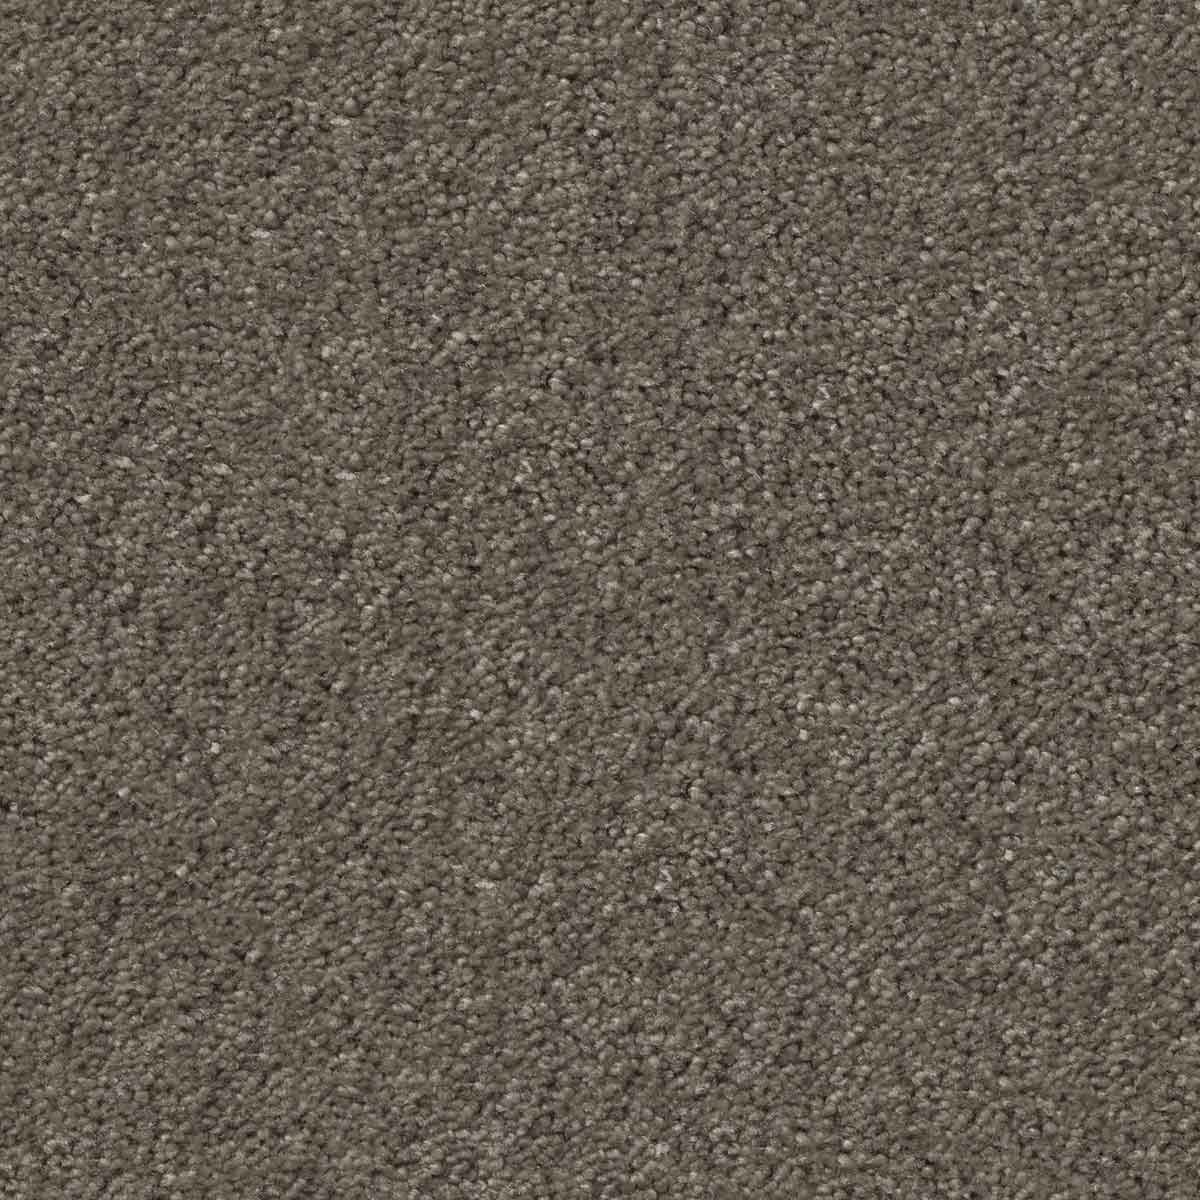 silky seal teppich greige 1 50 x 2 00 m object carpet. Black Bedroom Furniture Sets. Home Design Ideas